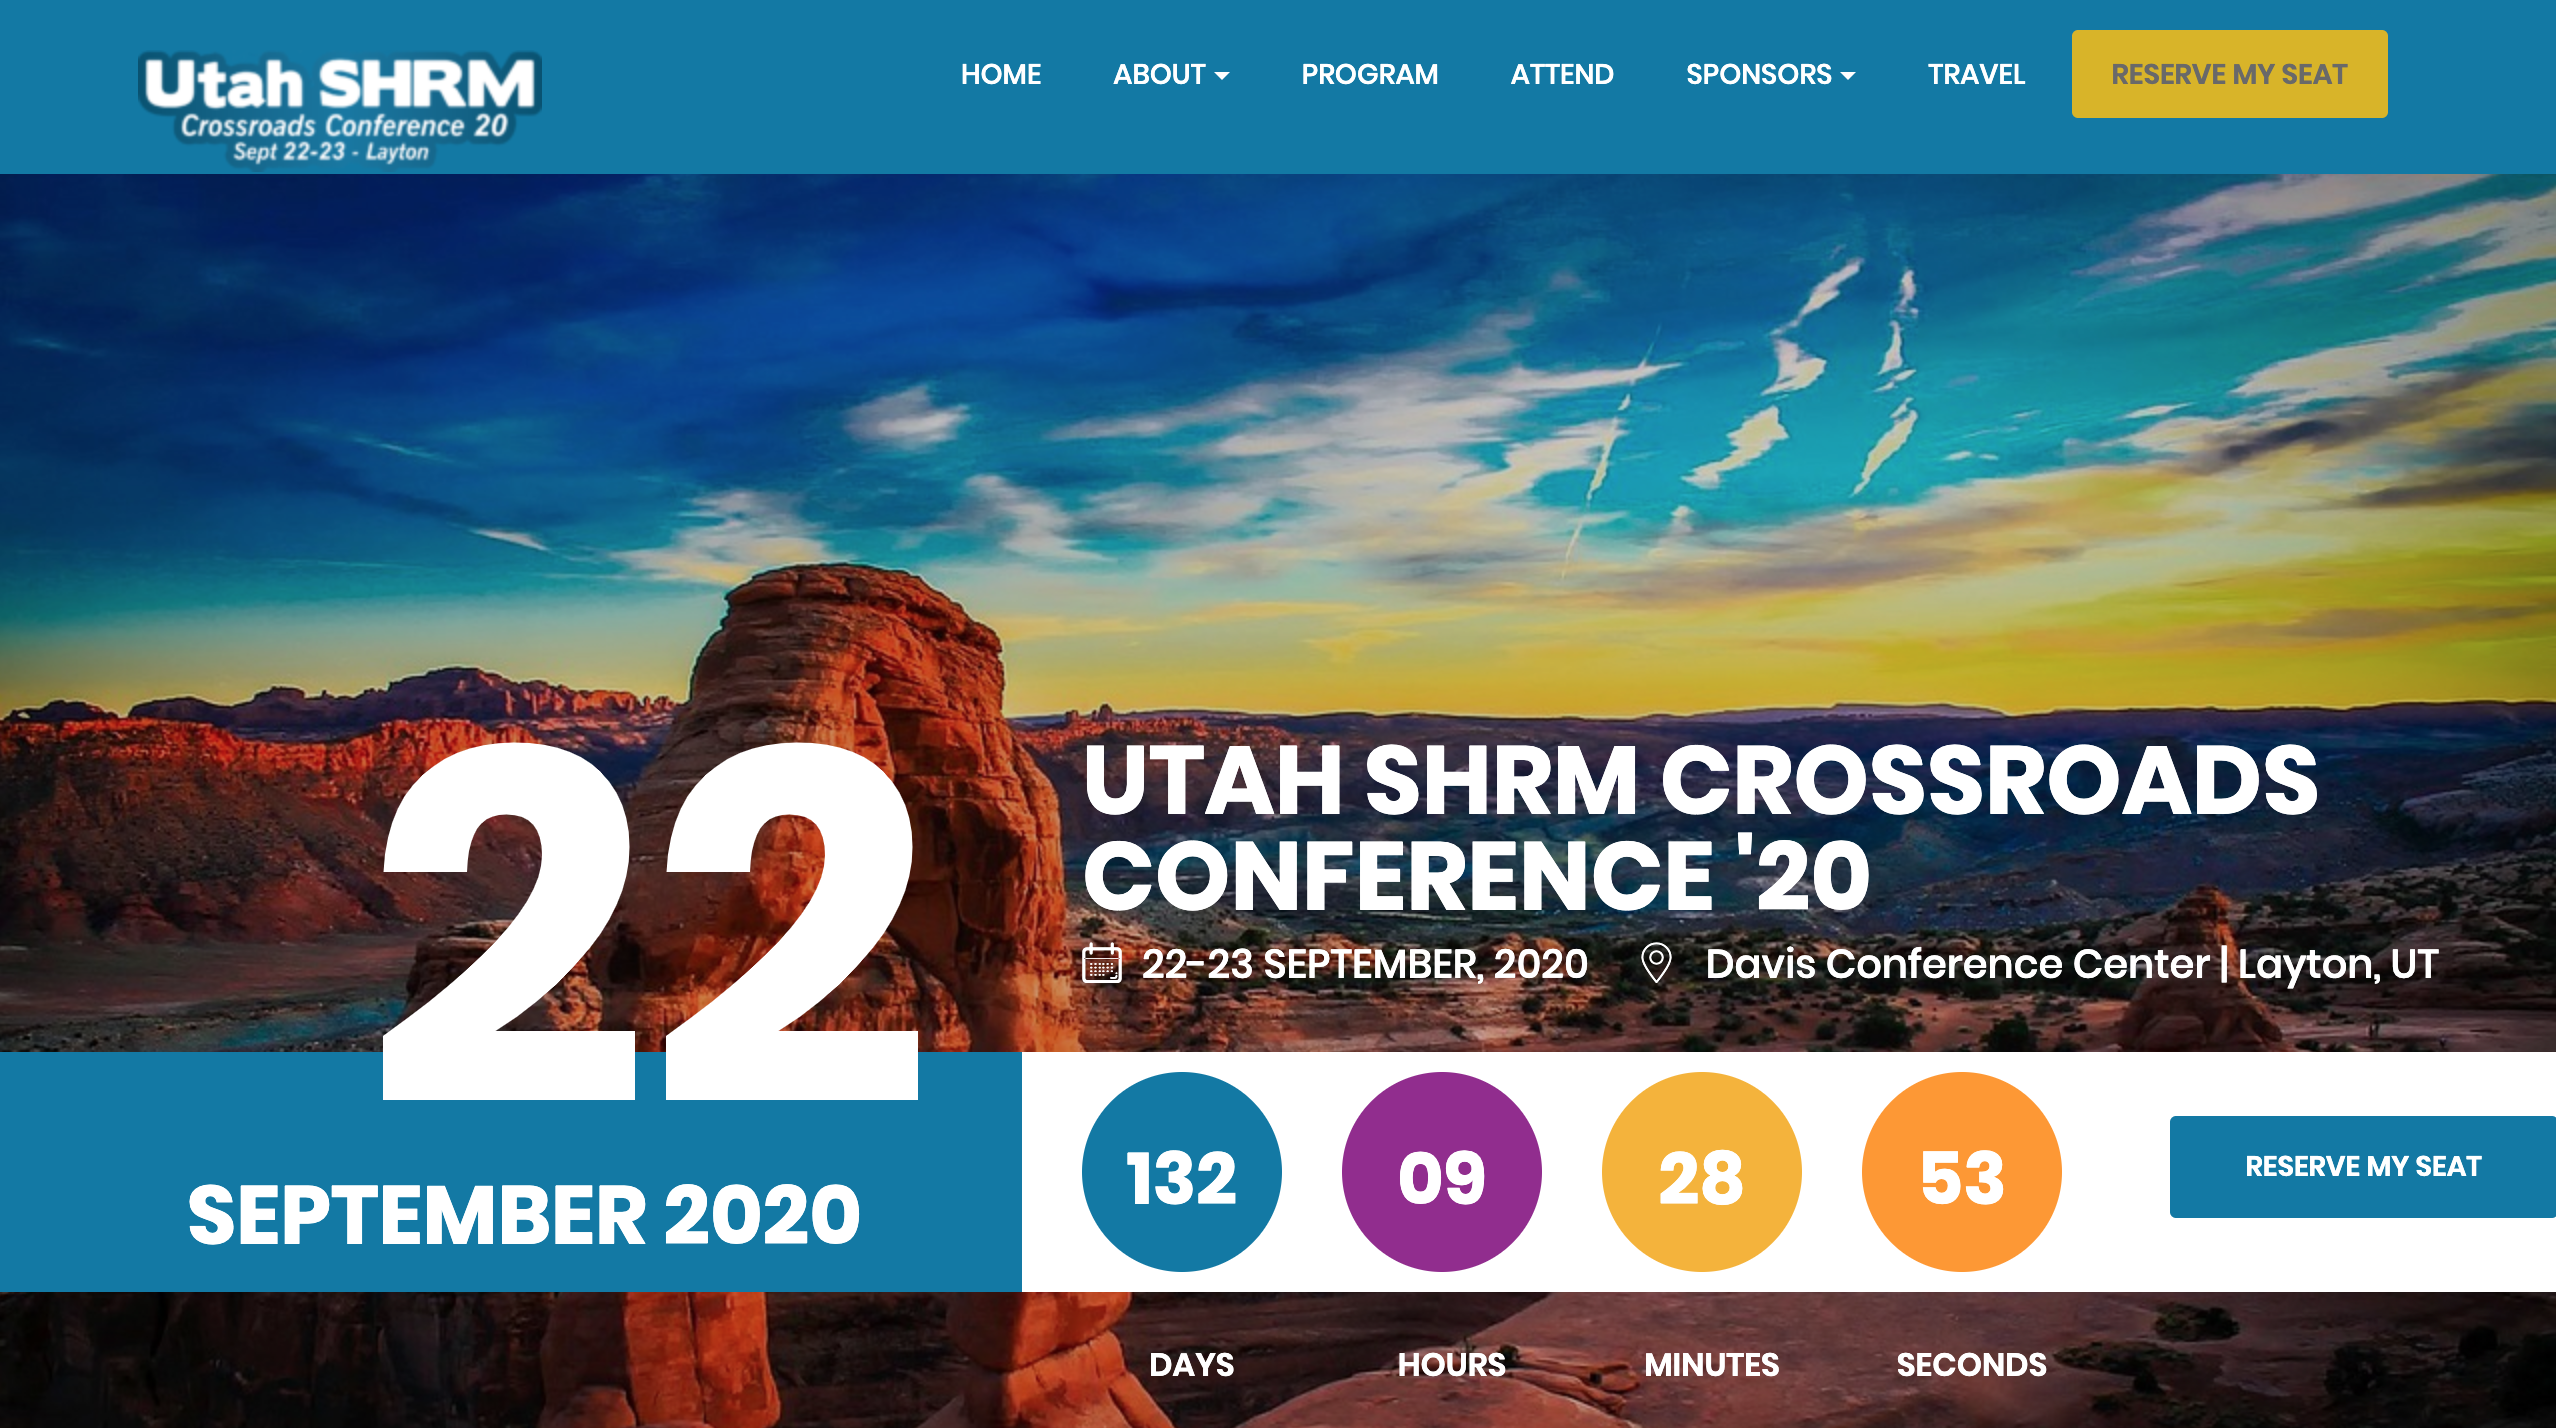 Utah Crossroads Conference website screenshot